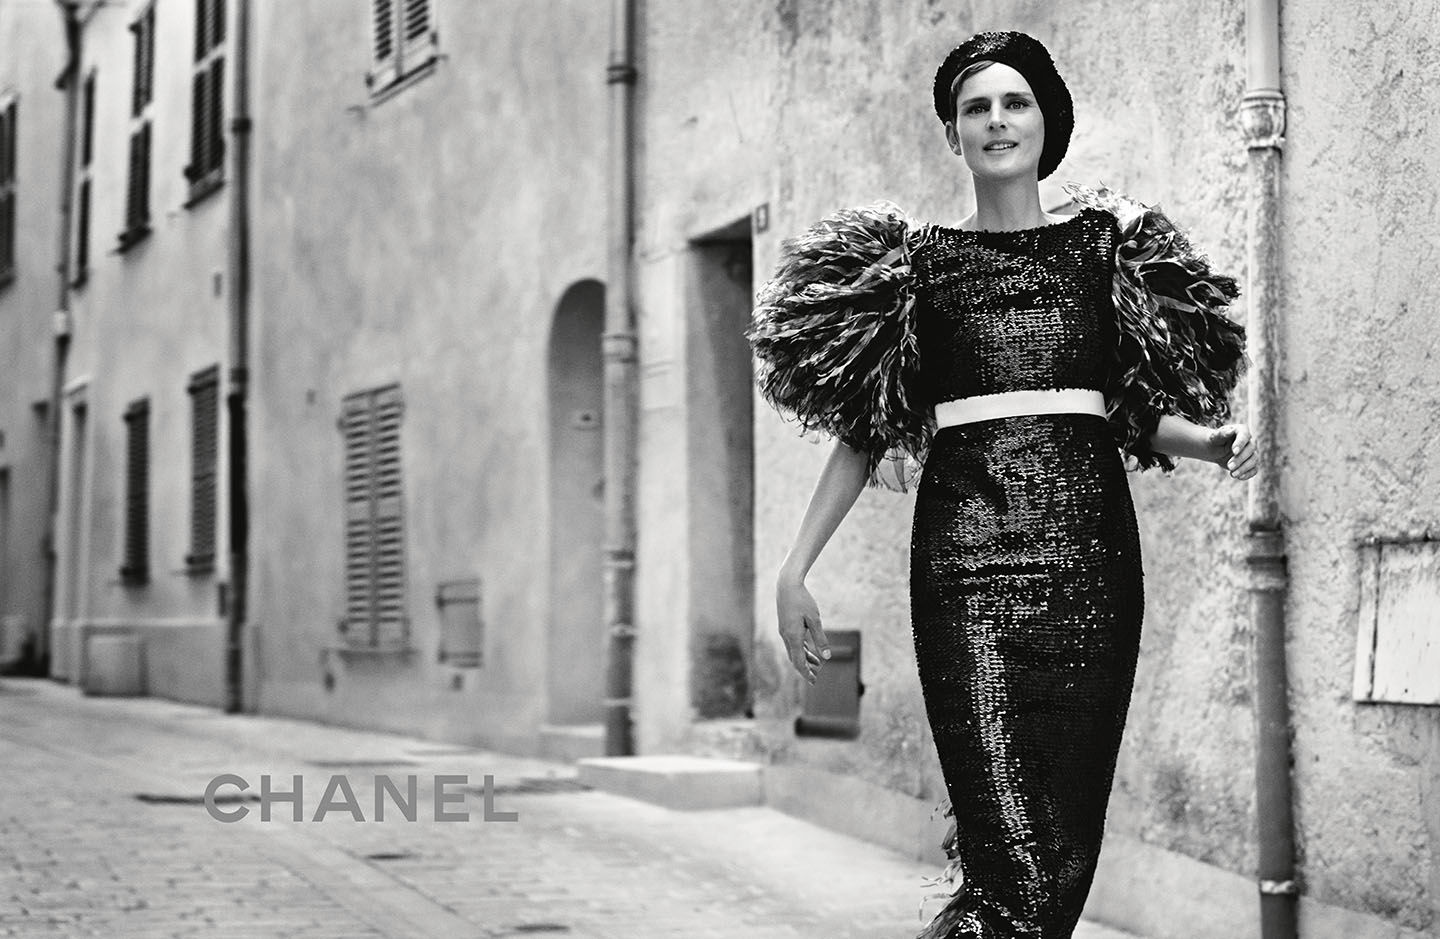 Discussion on this topic: Chanel Cruise 2019 Campaign Shot In Cuba, chanel-cruise-2019-campaign-shot-in-cuba/